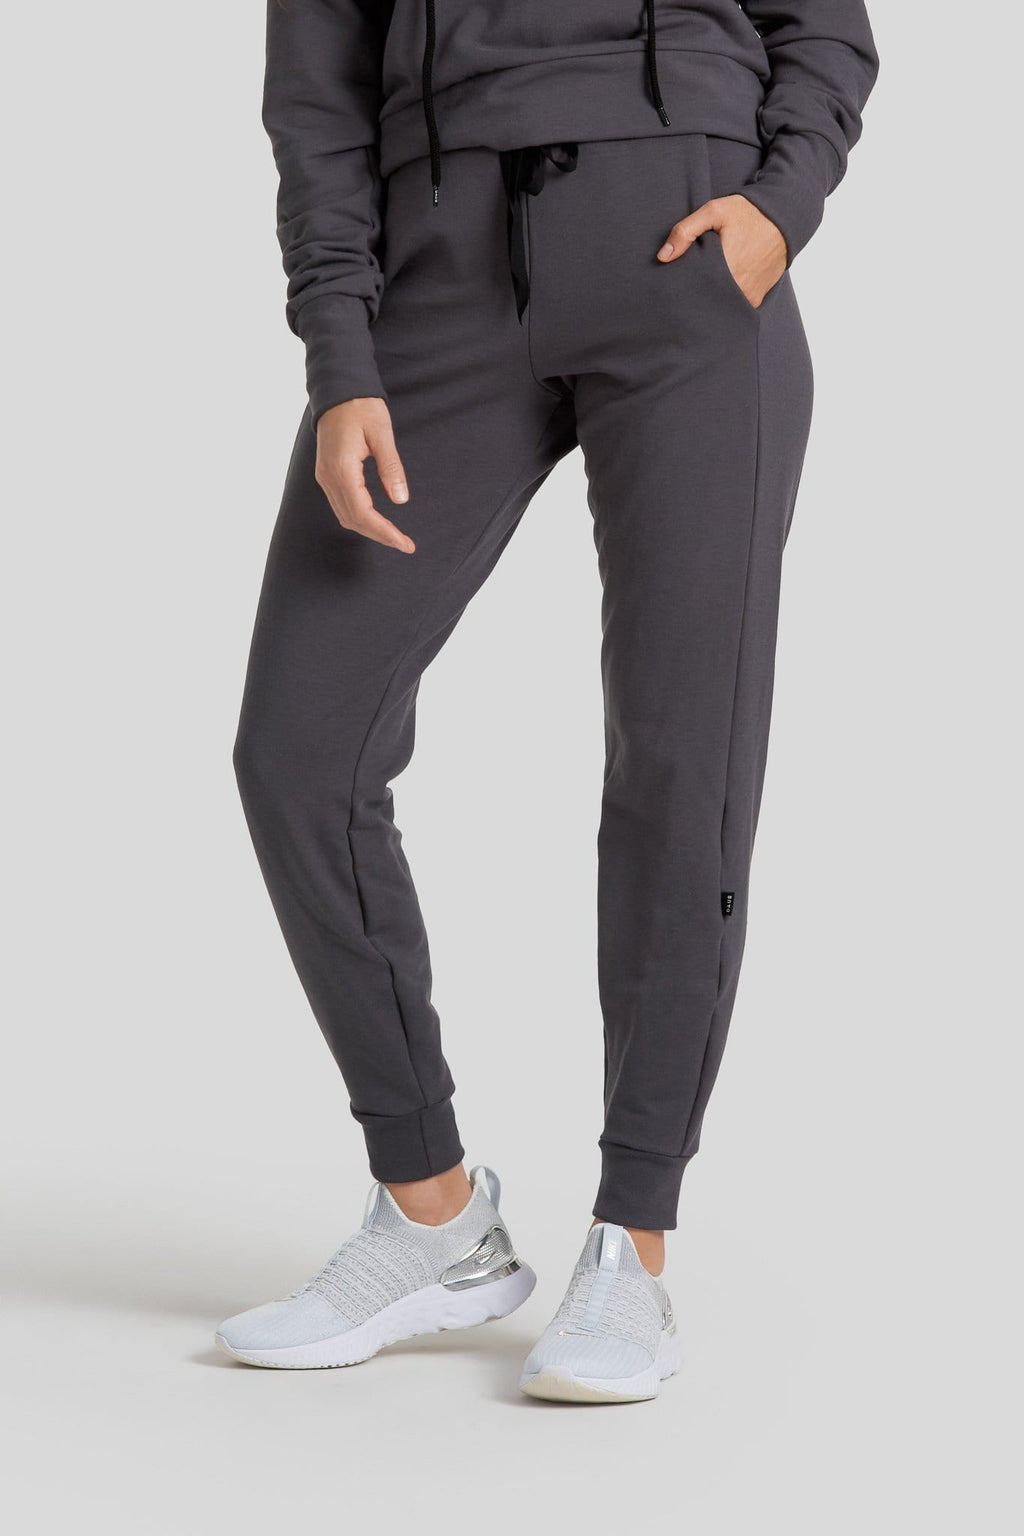 A woman's legs are shown wearing dark grey joggers